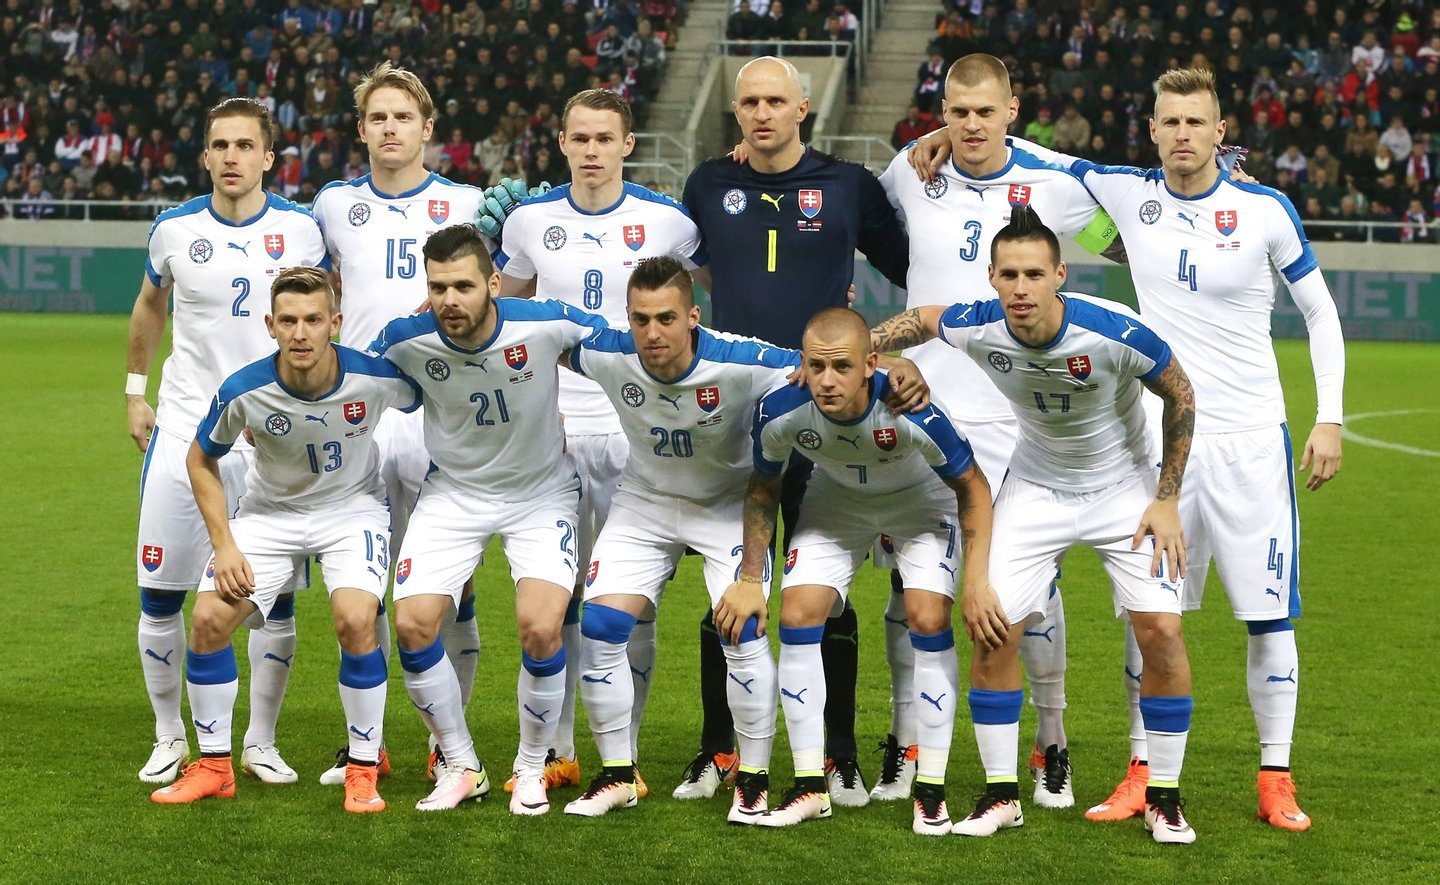 TRNAVA, SLOVAKIA - MARCH 25: The Slovakia team pose for a team photo during the international friendly match between Slovakia and Latvia held at Stadion Antona Malatinskeho on March 25, 2016 in Trnava, Slovakia. (Photo by David Rogers/Getty Images)